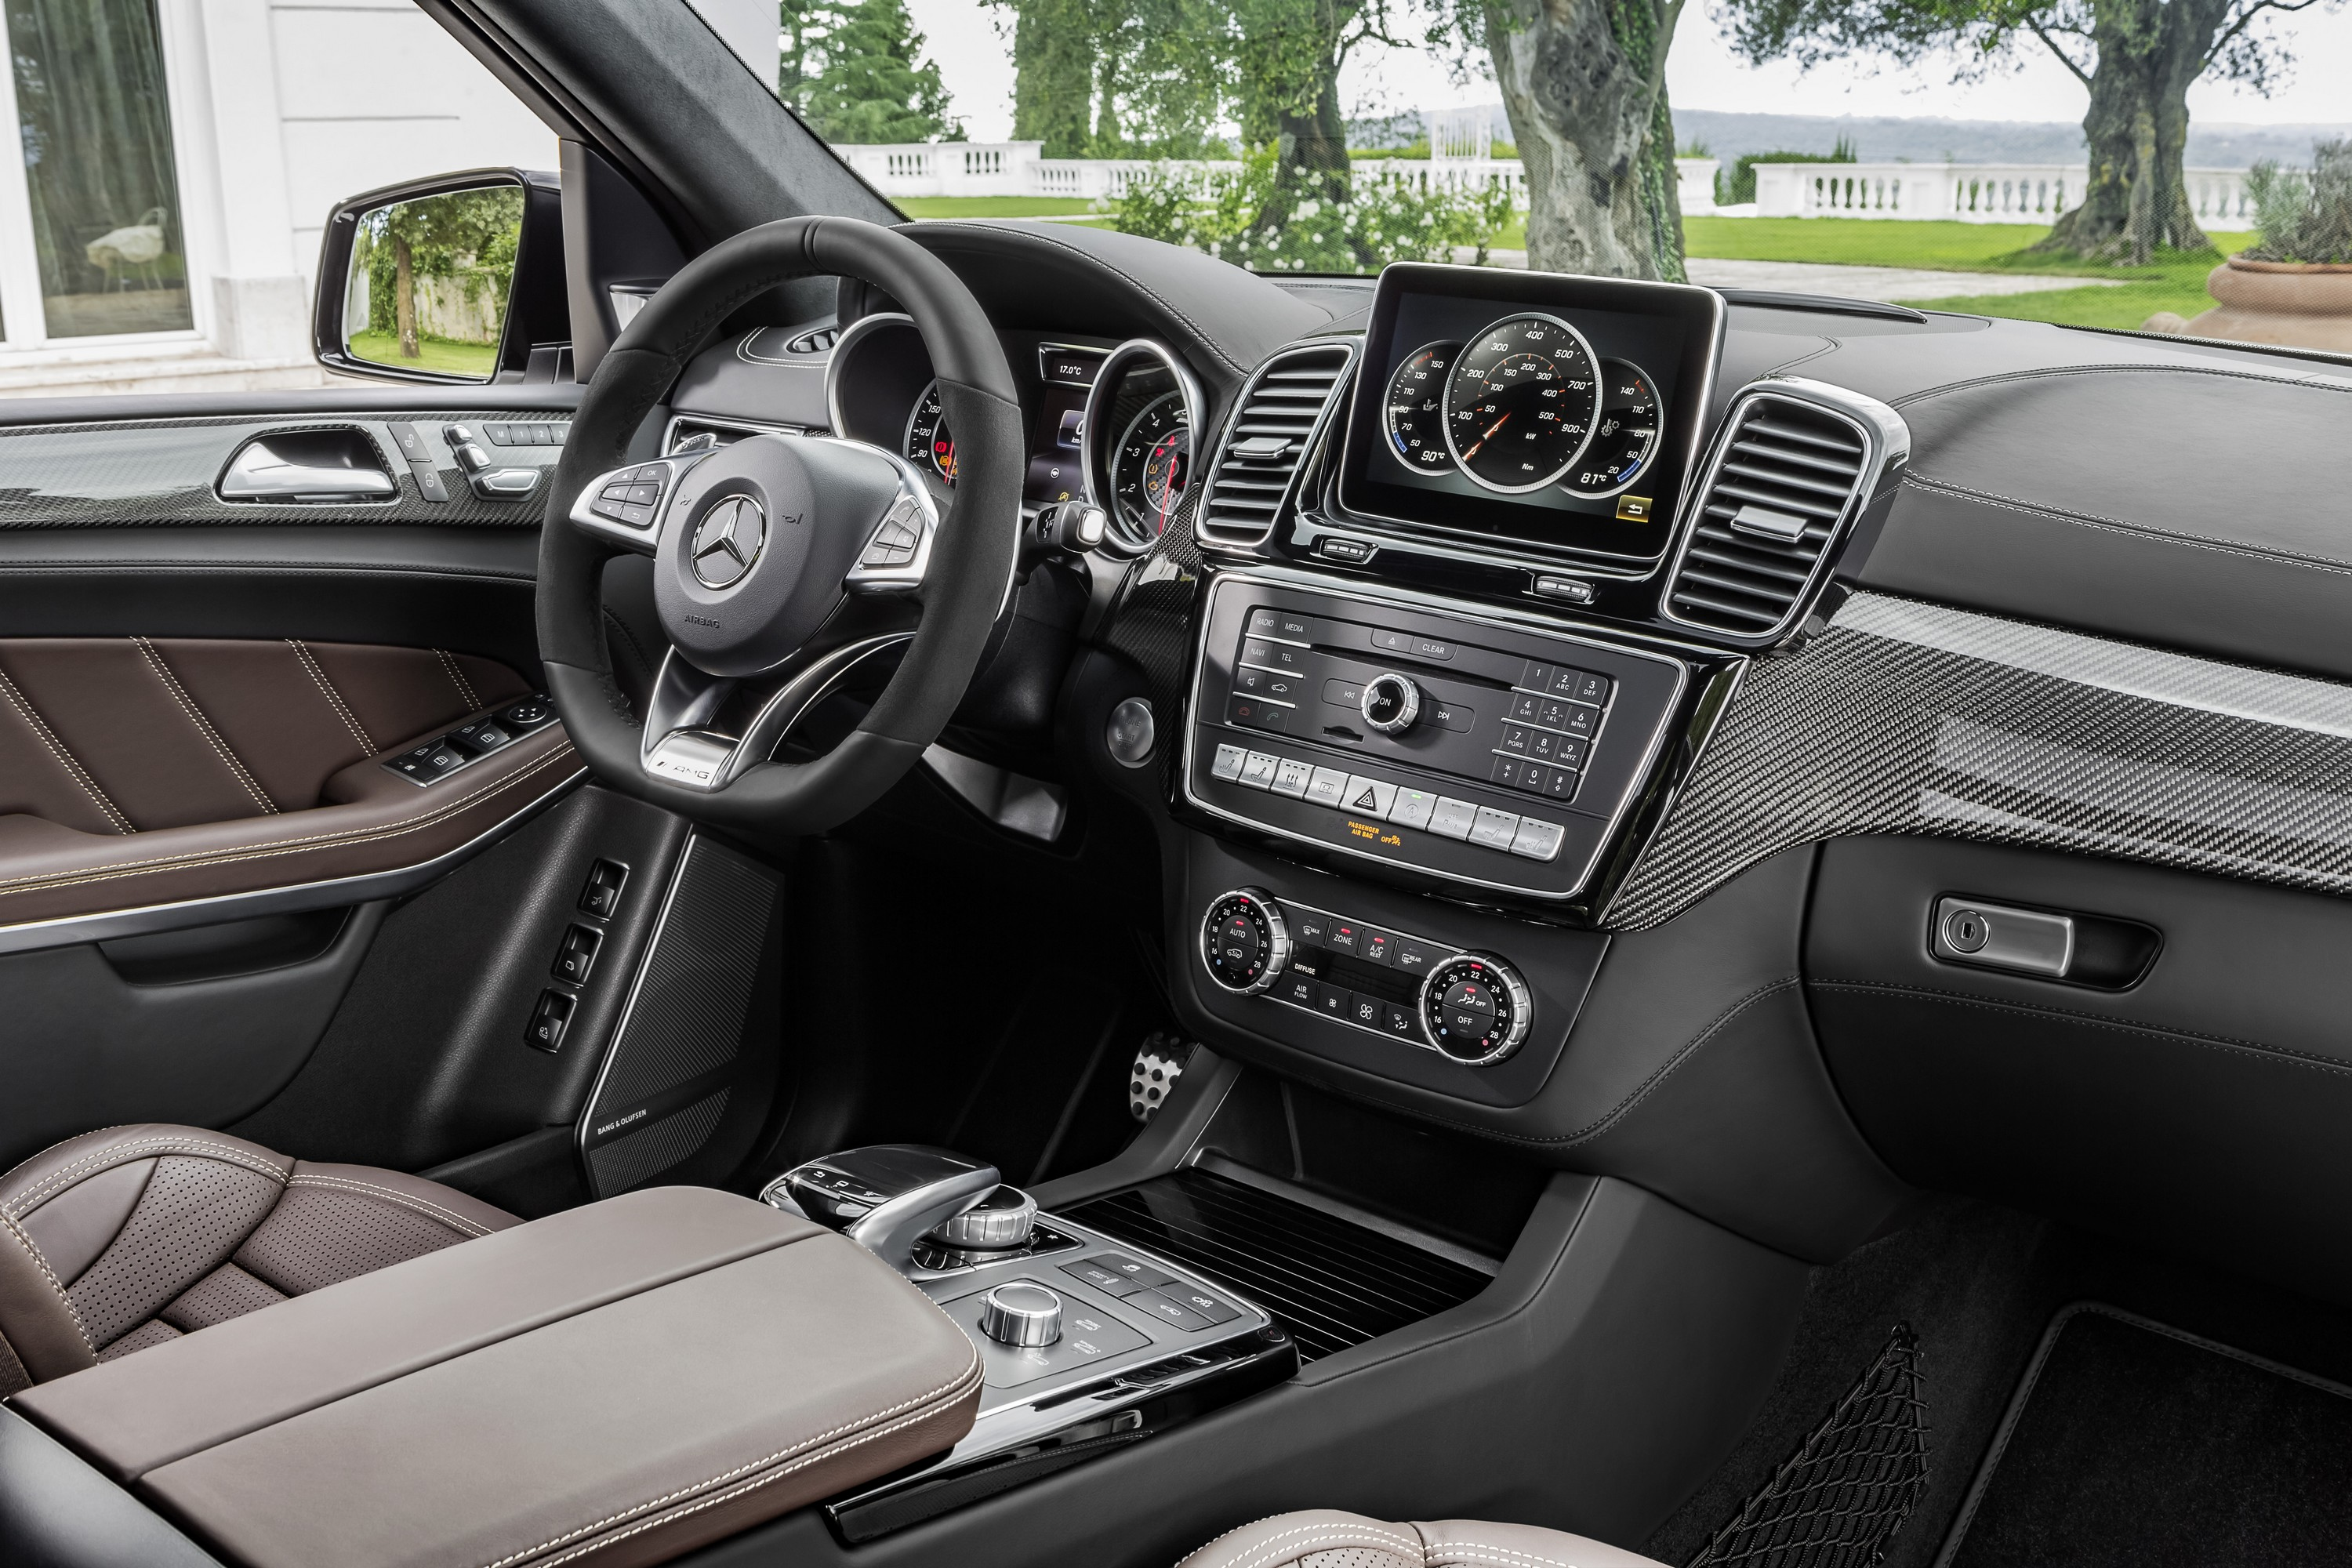 htm center specialized benz offer the parts trained technology index access service of you mercedes in precise so we latest denver analysis to and from repair have